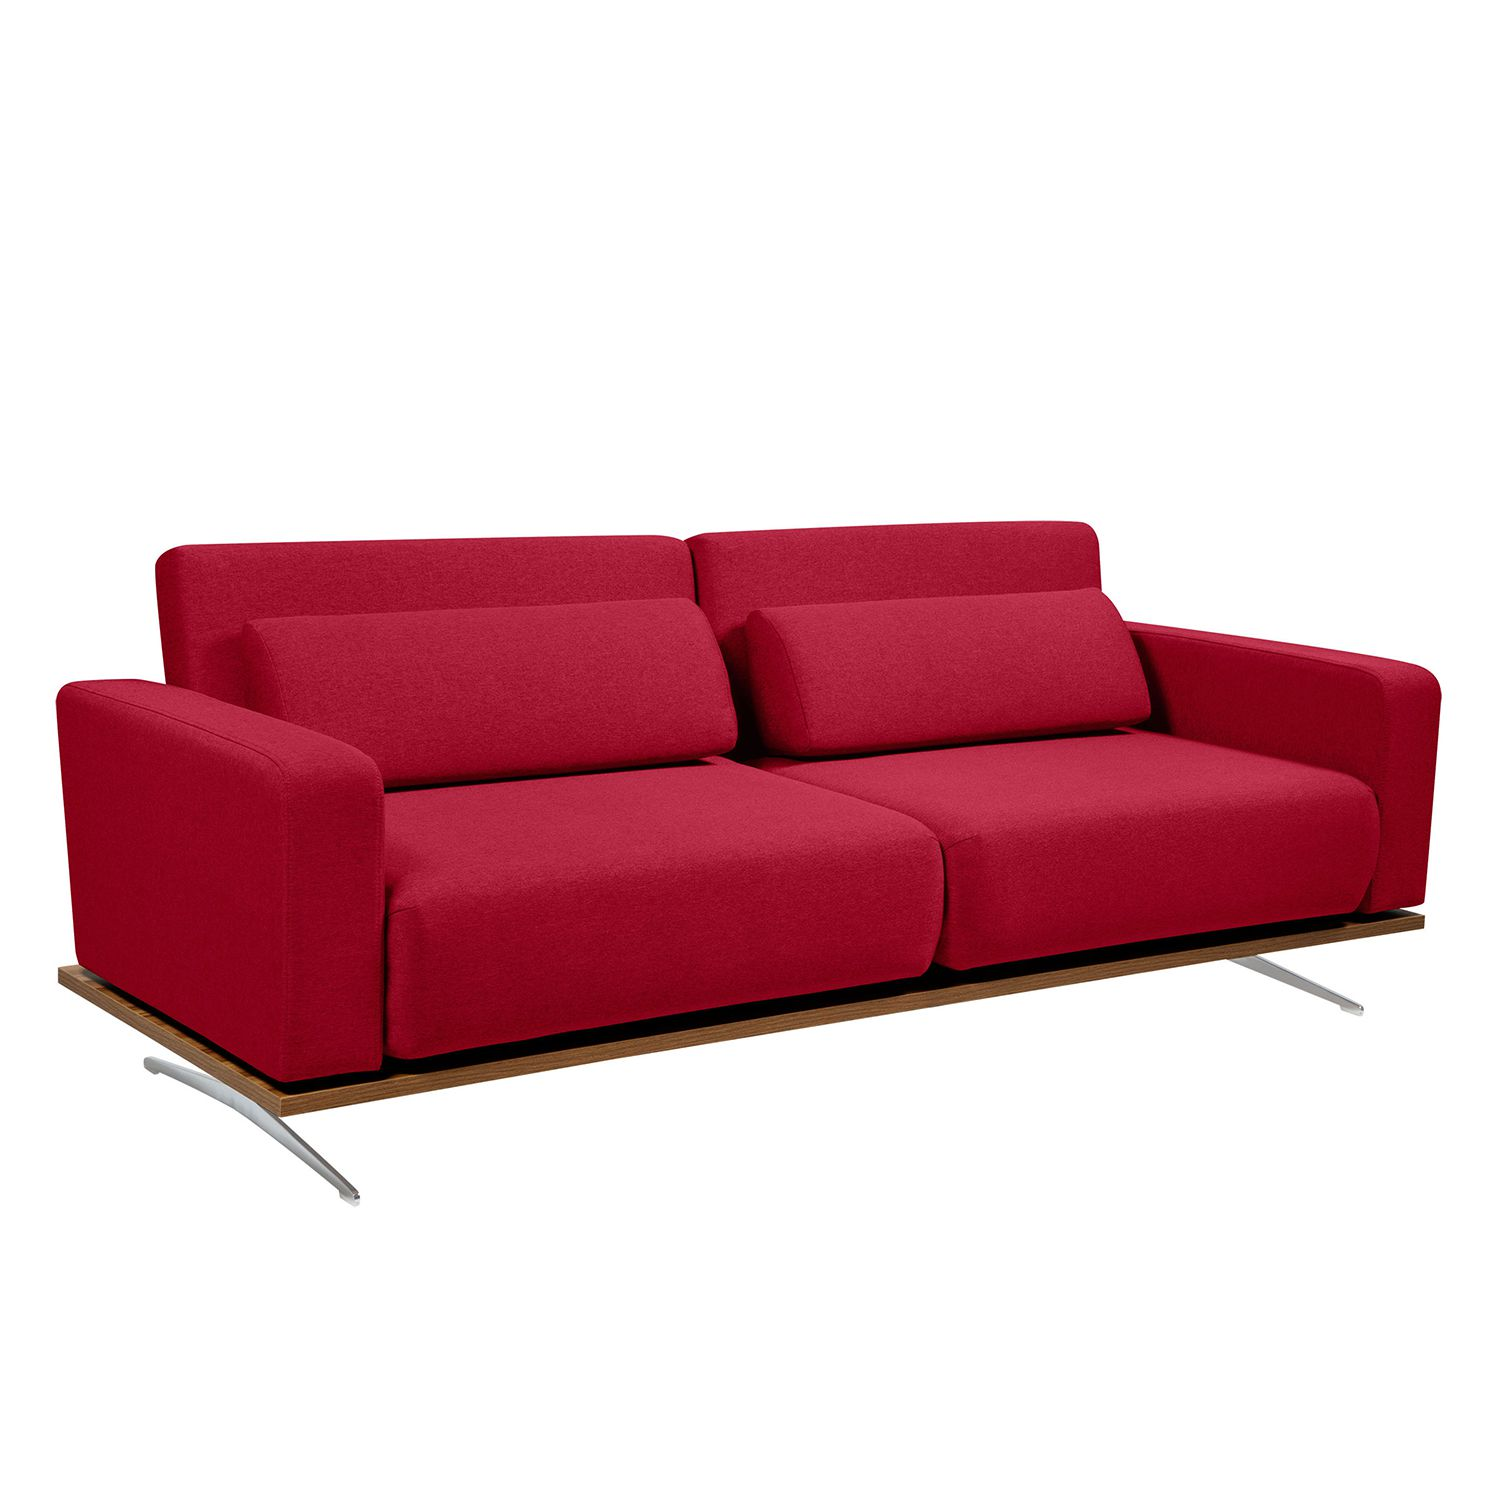 Schlafsofa Copperfield II - Webstoff - Stoff Zahira Rot